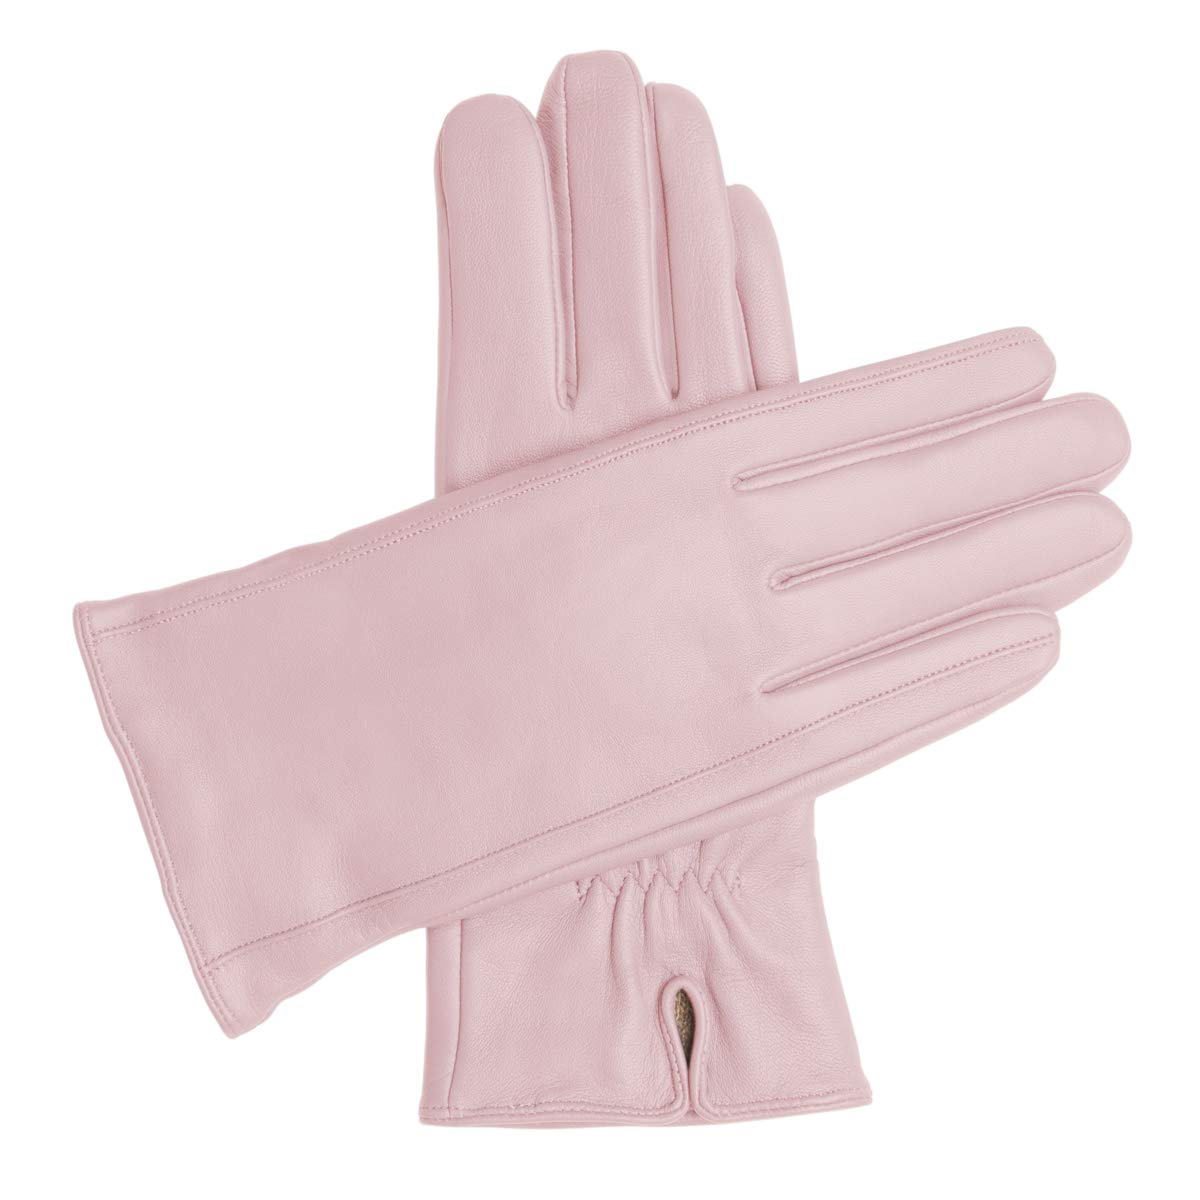 Downholme Classic Leather Cashmere Lined Gloves for Women (Pink, M) by Downholme